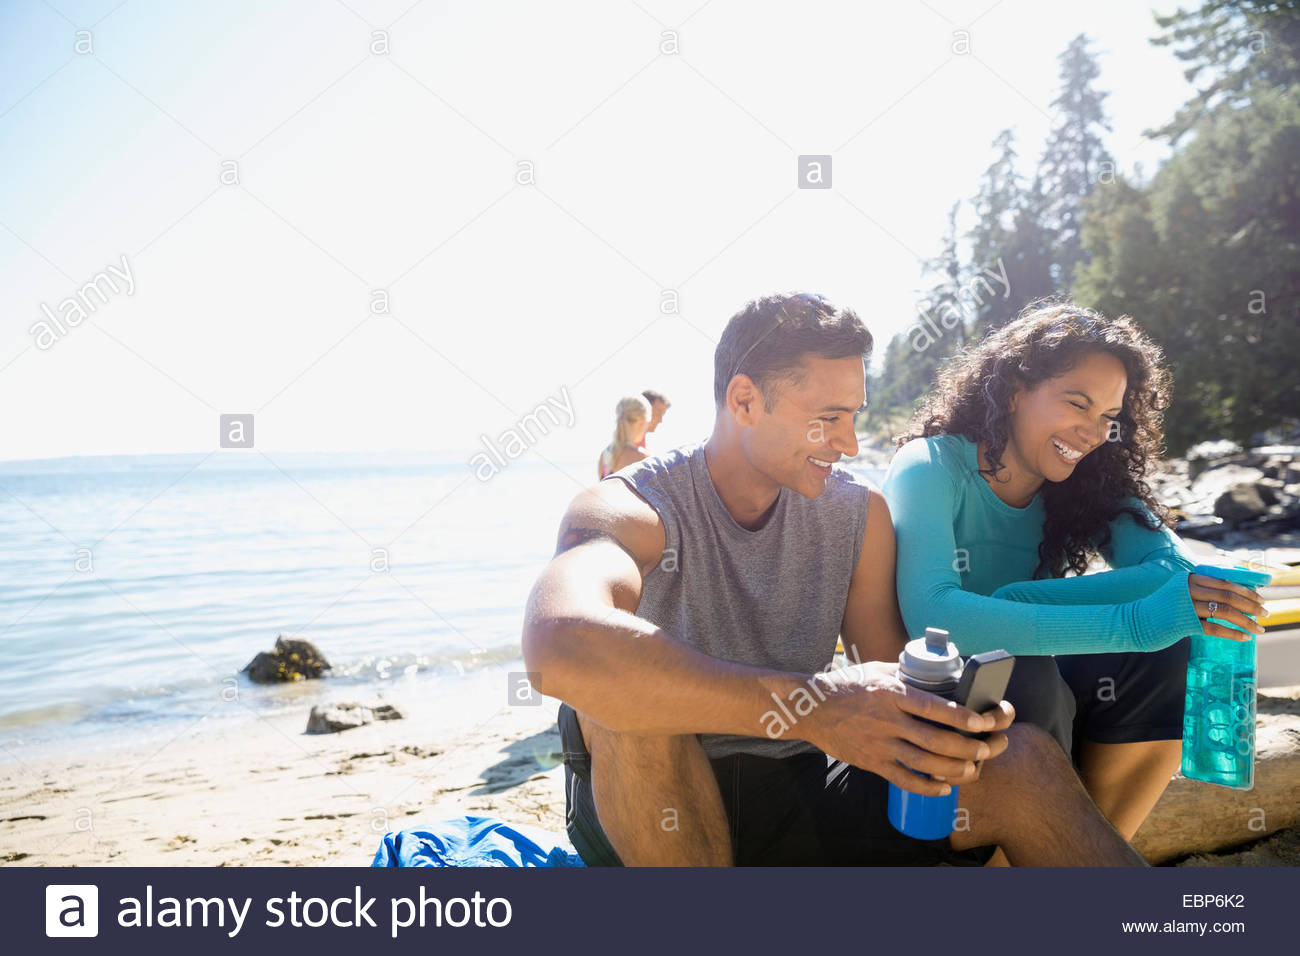 Runners sitting on sunny beach with water bottles - Stock Image